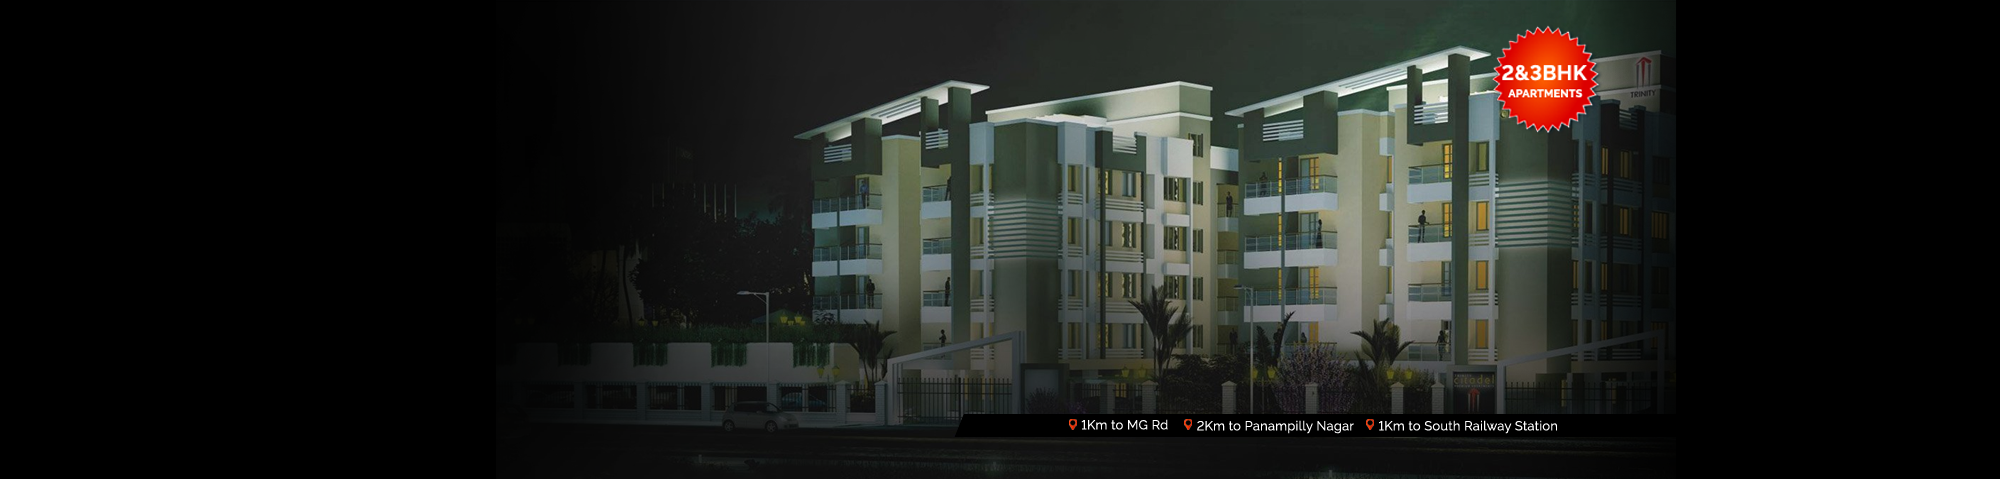 3BHK Apartments in Kochi